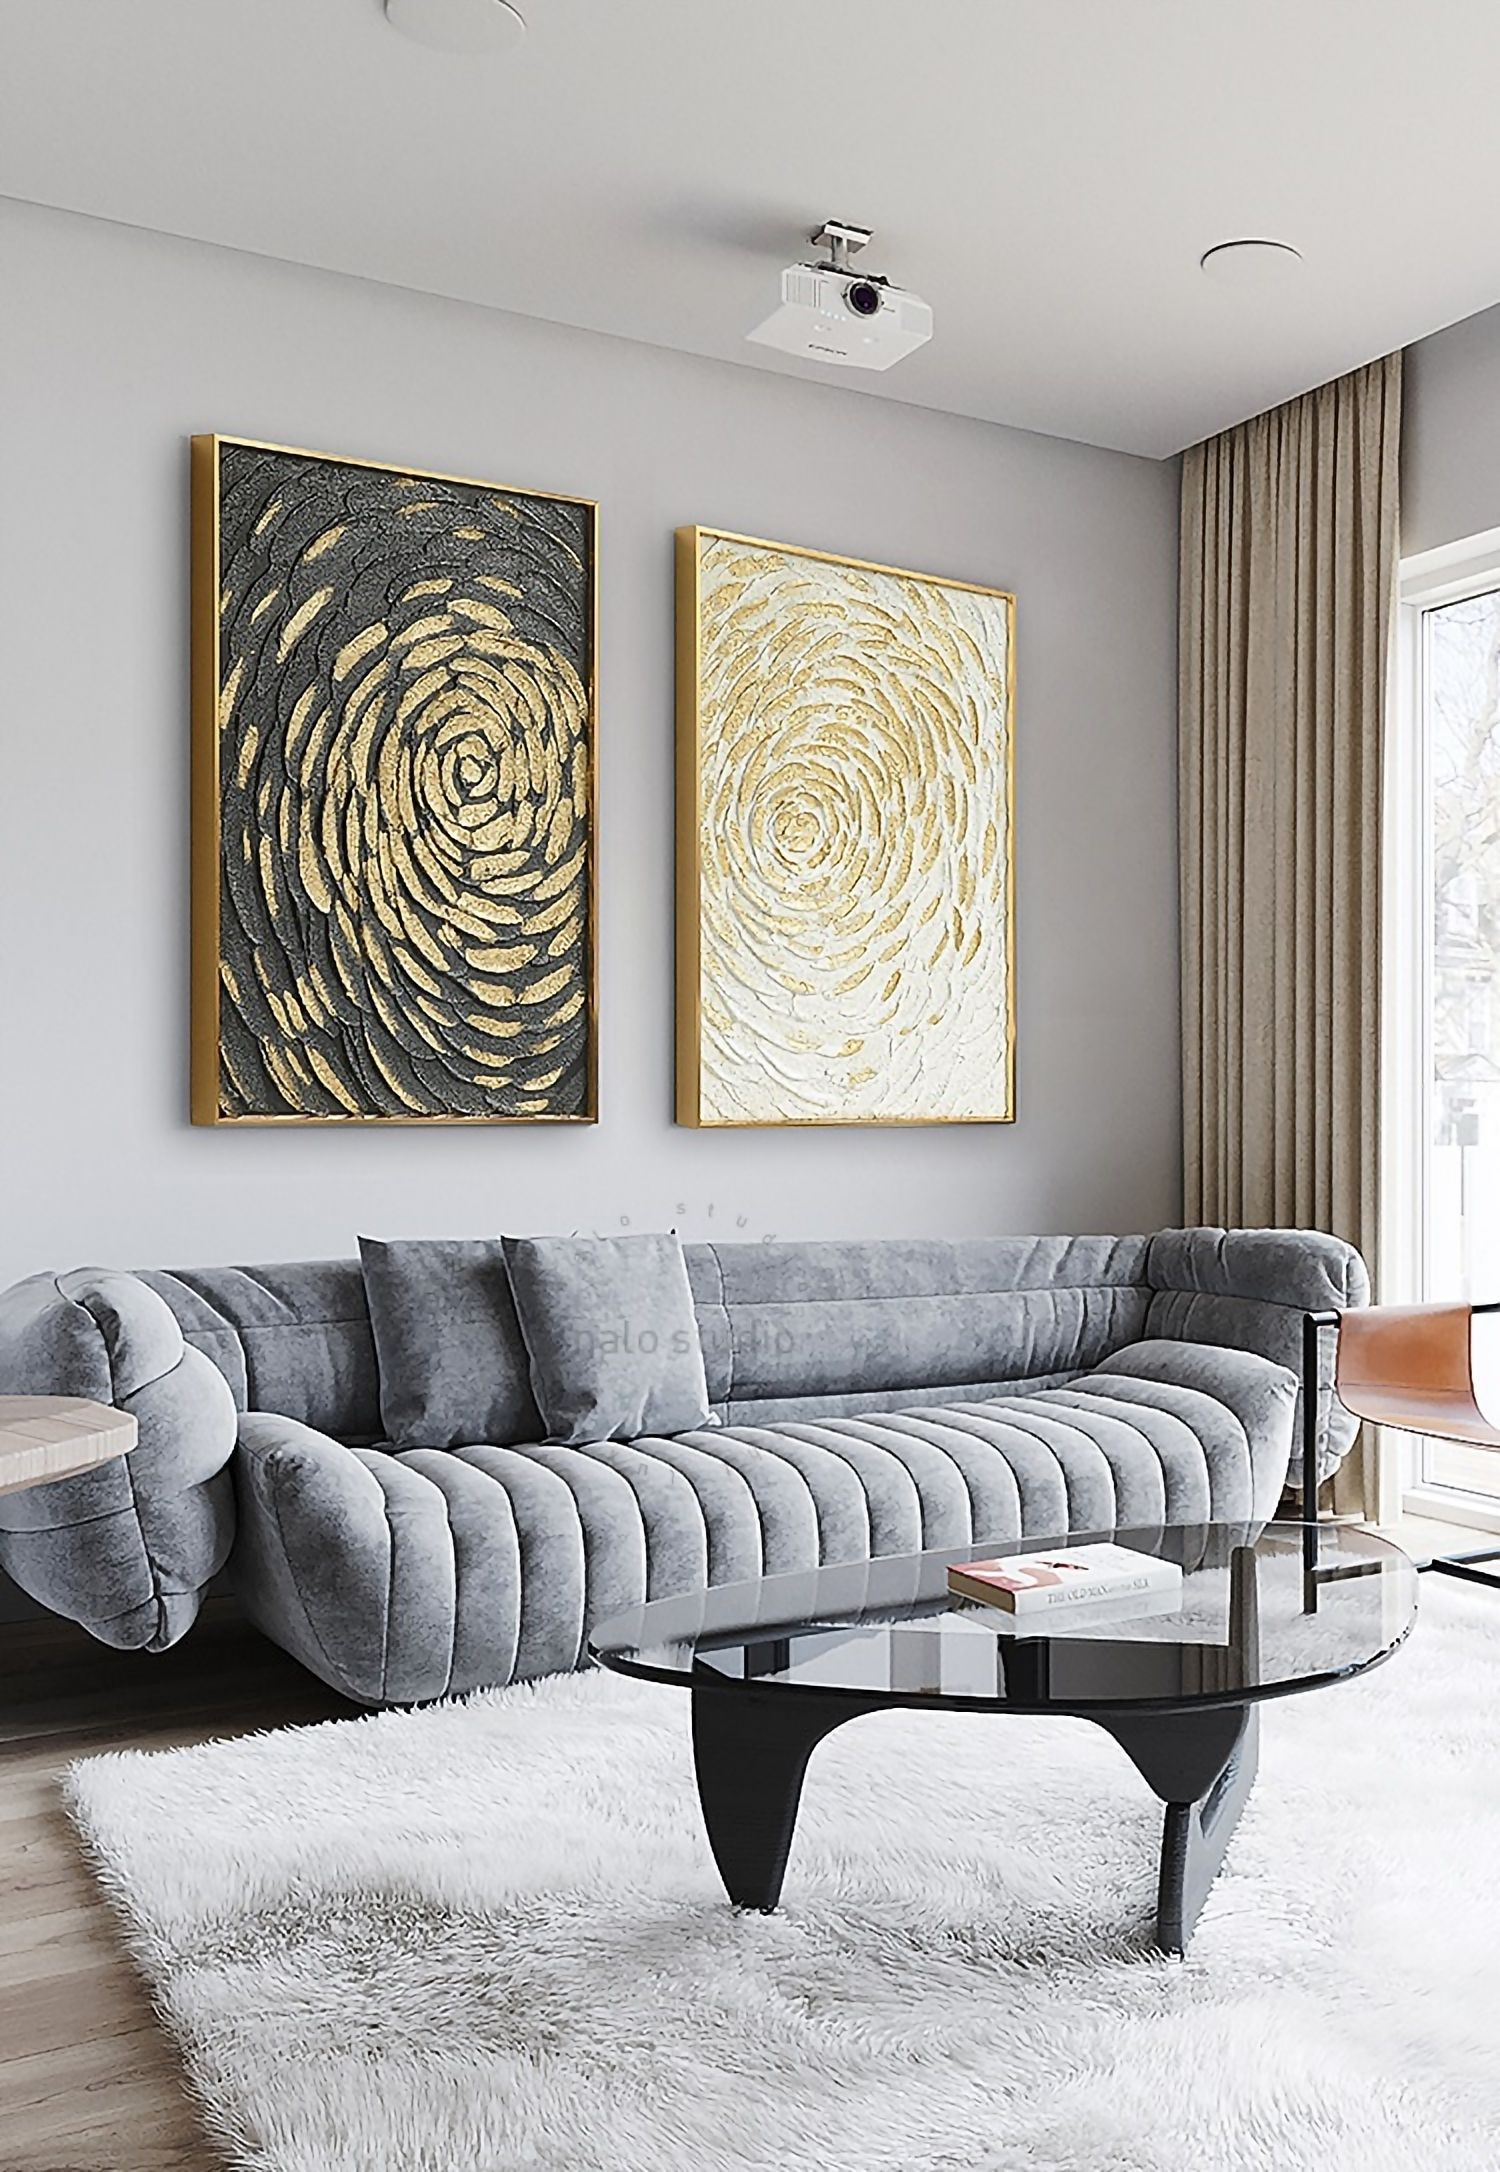 Gold Leaf And Silver Painting Set Of 2 Wall Art Pintura De Lienzo Pintura Abstracta Lienzos #painting #pictures #for #living #room